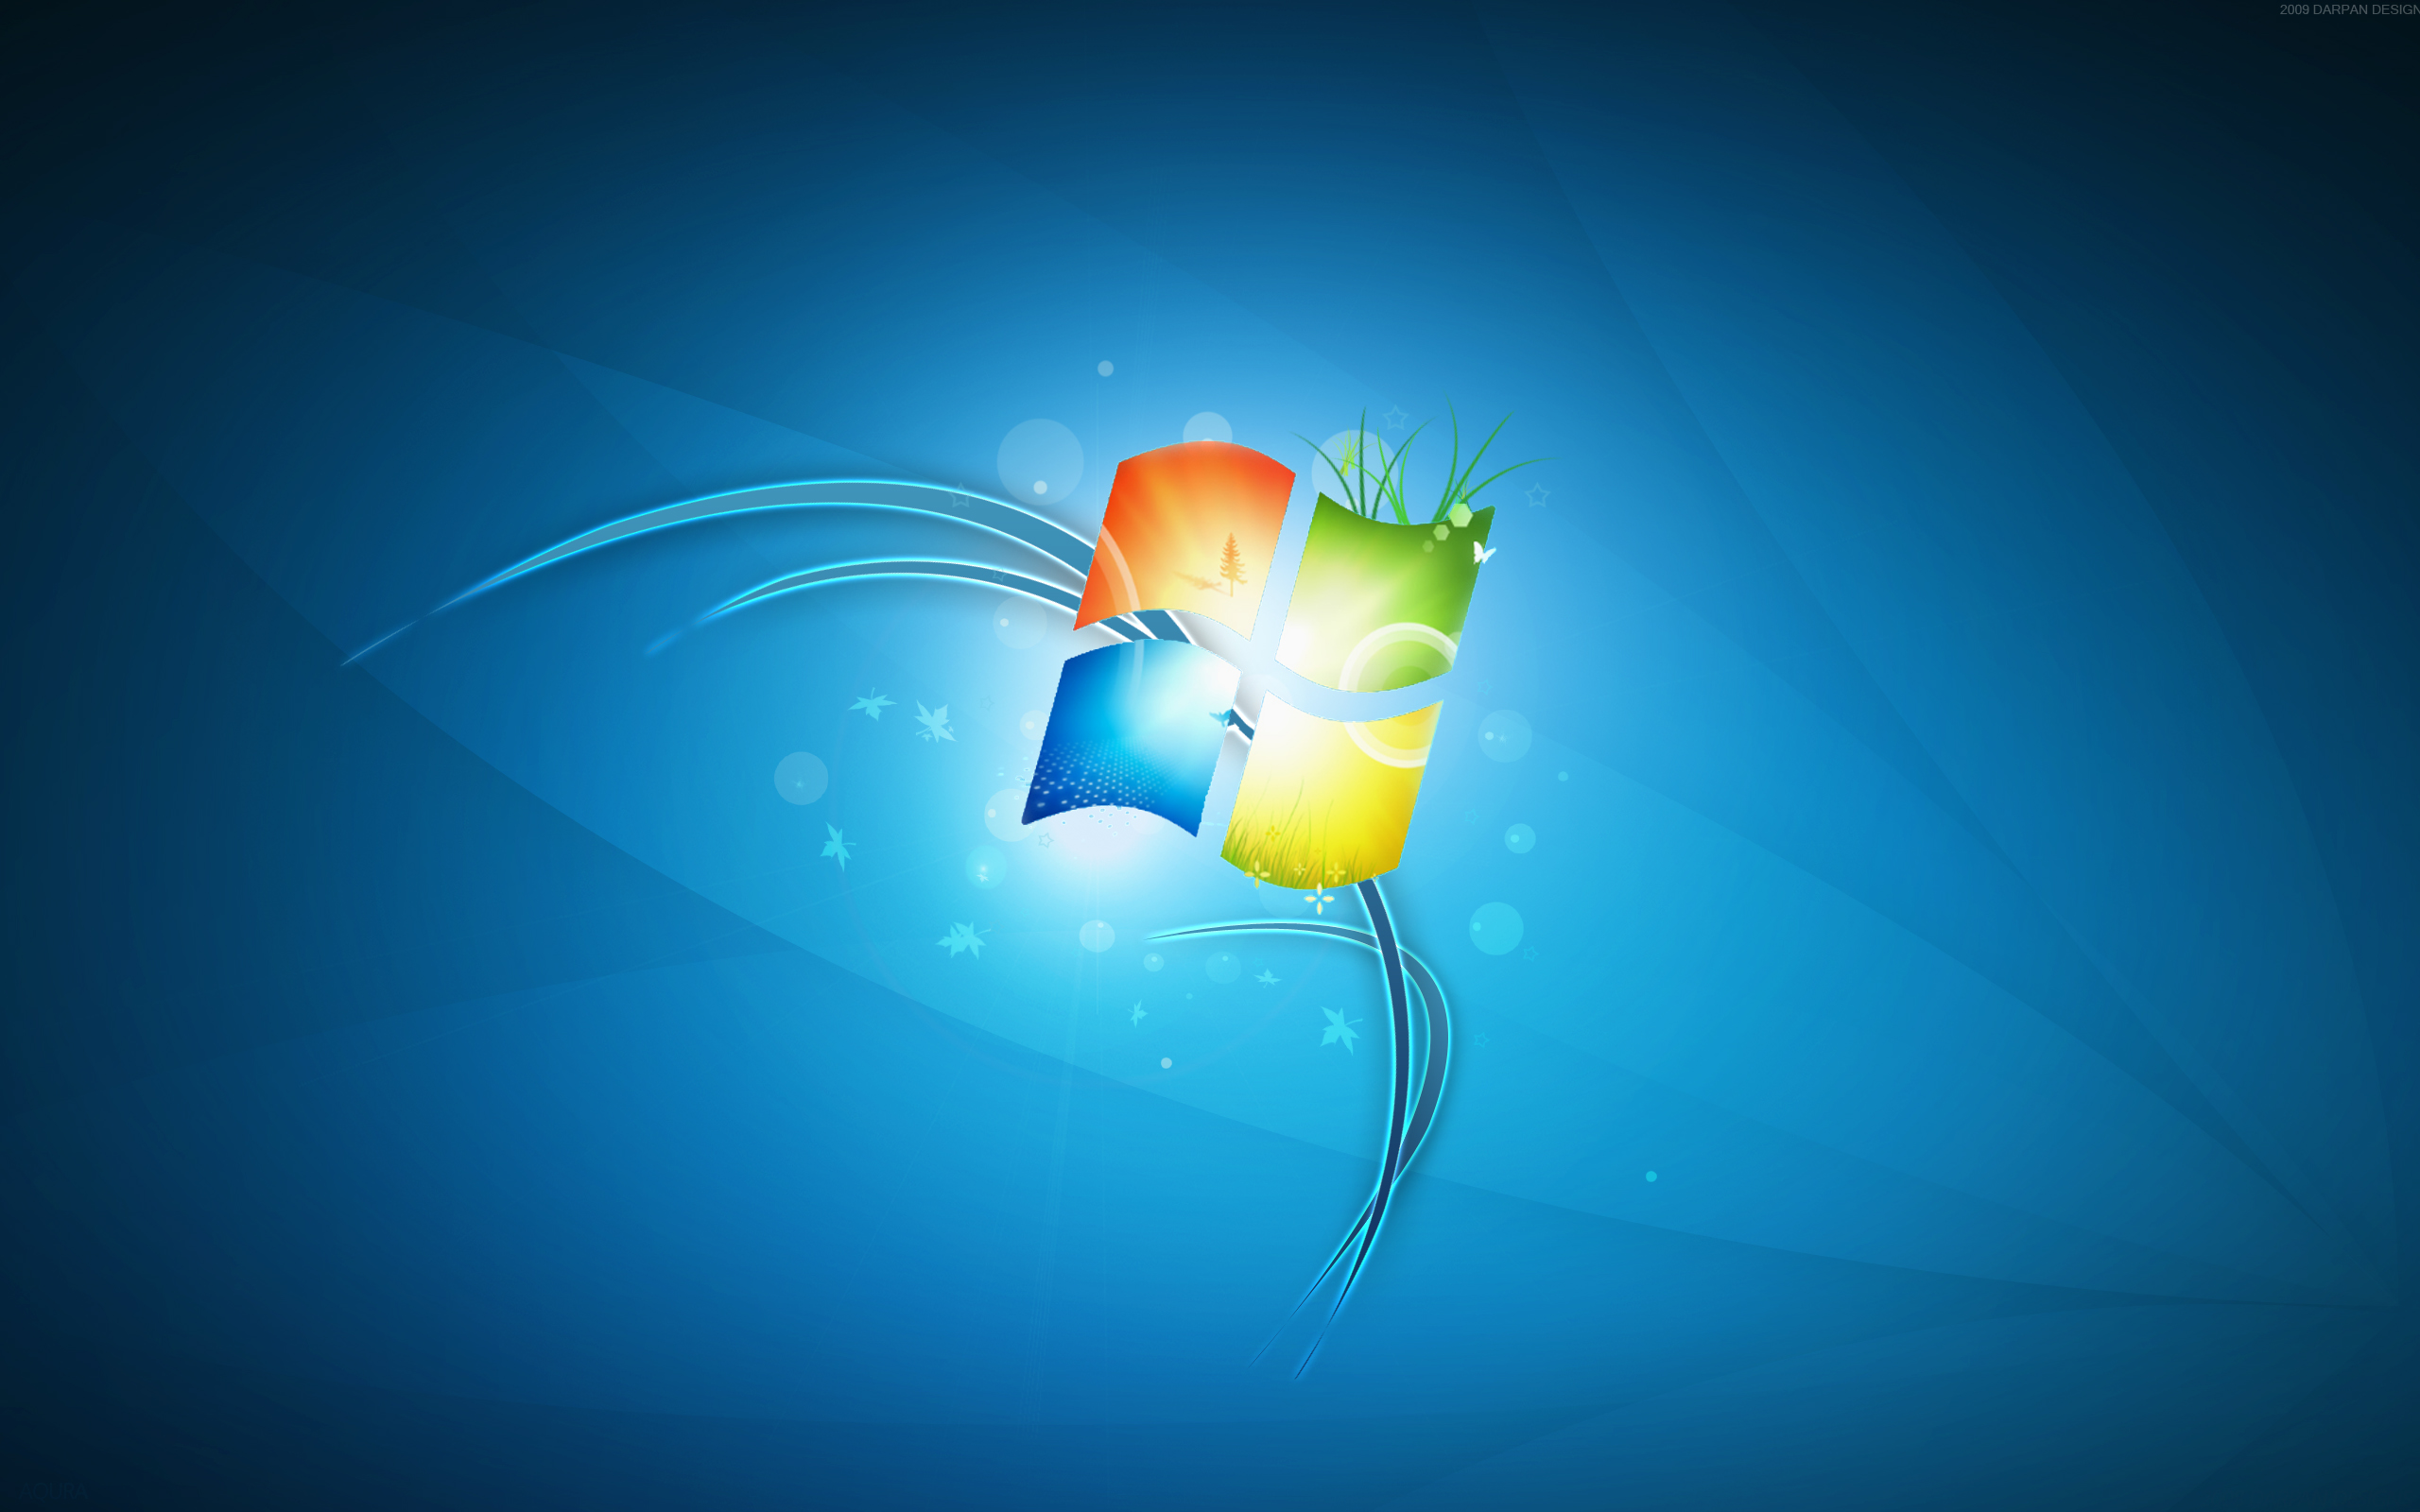 Microsoft Desktop Backgrounds Wallpapers9 2560x1600